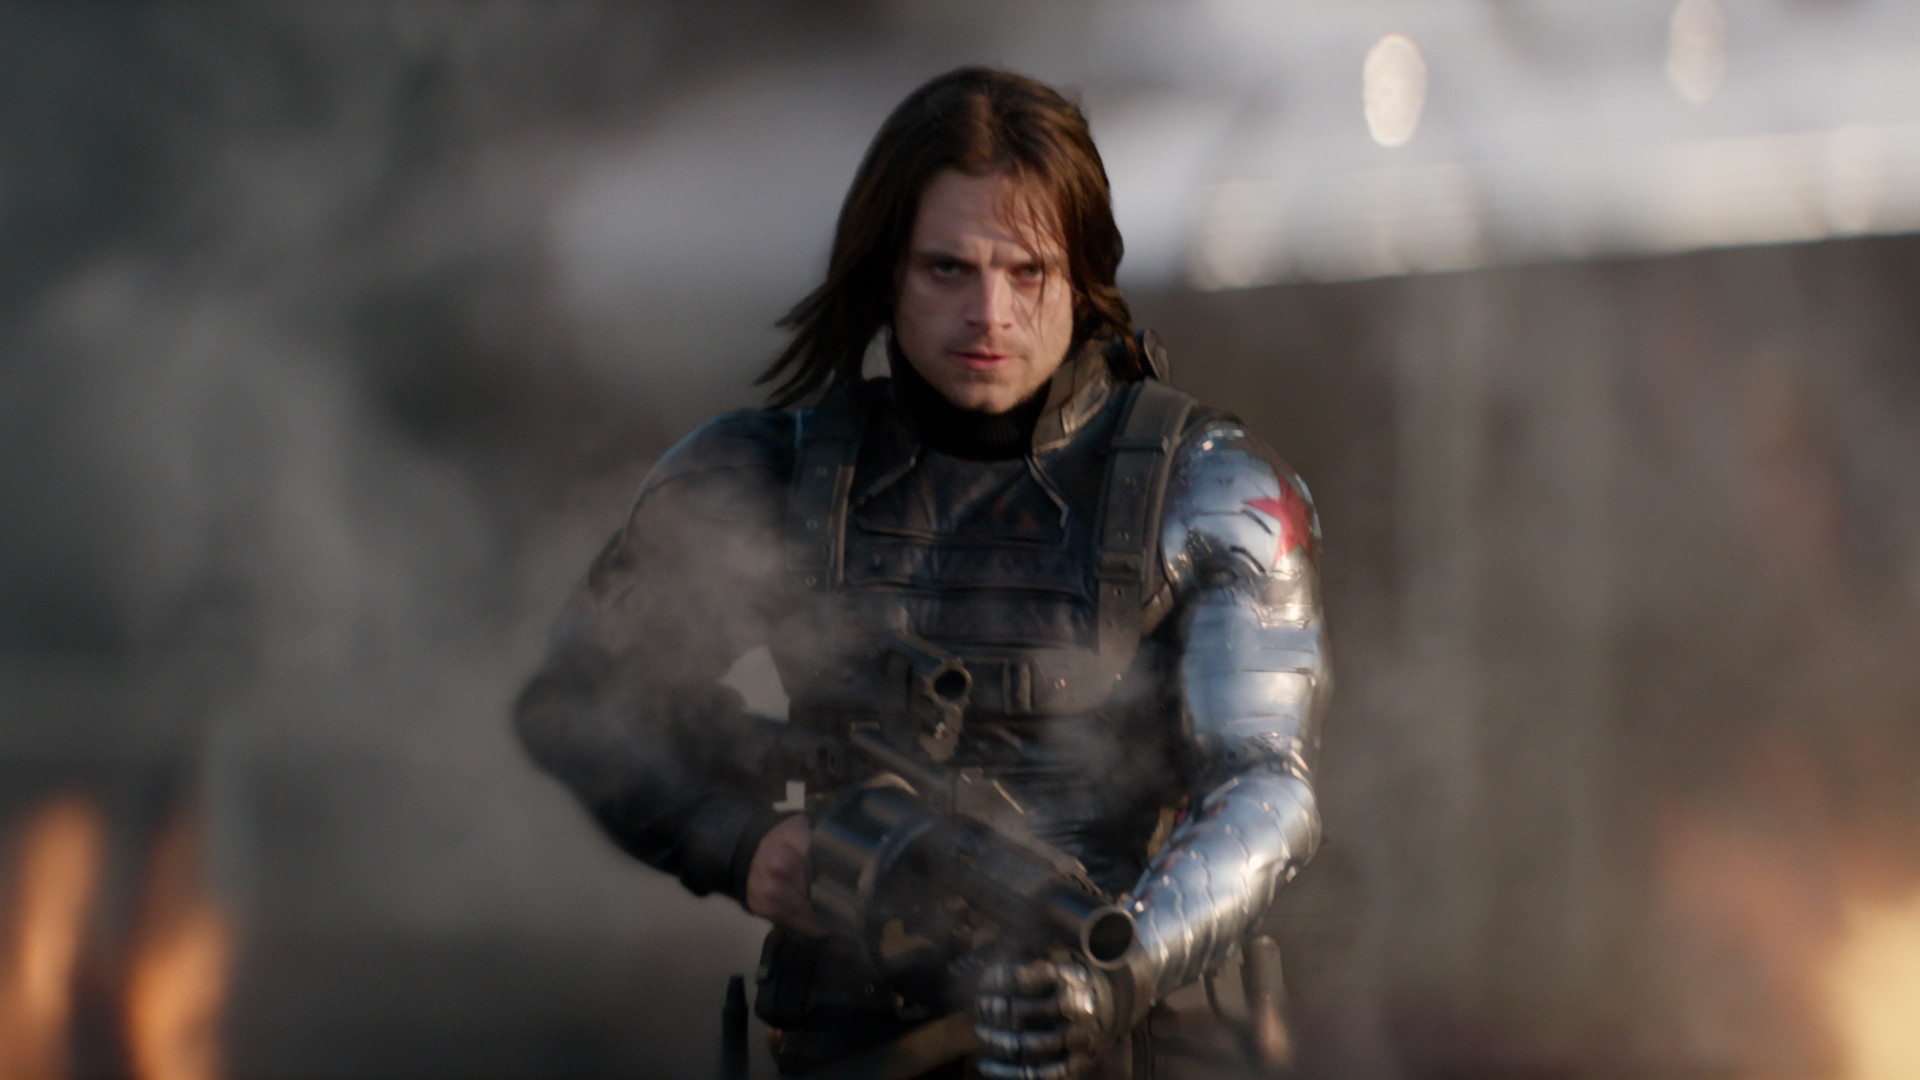 1920x1080 the winter soldier bucky barnes sebastian stan